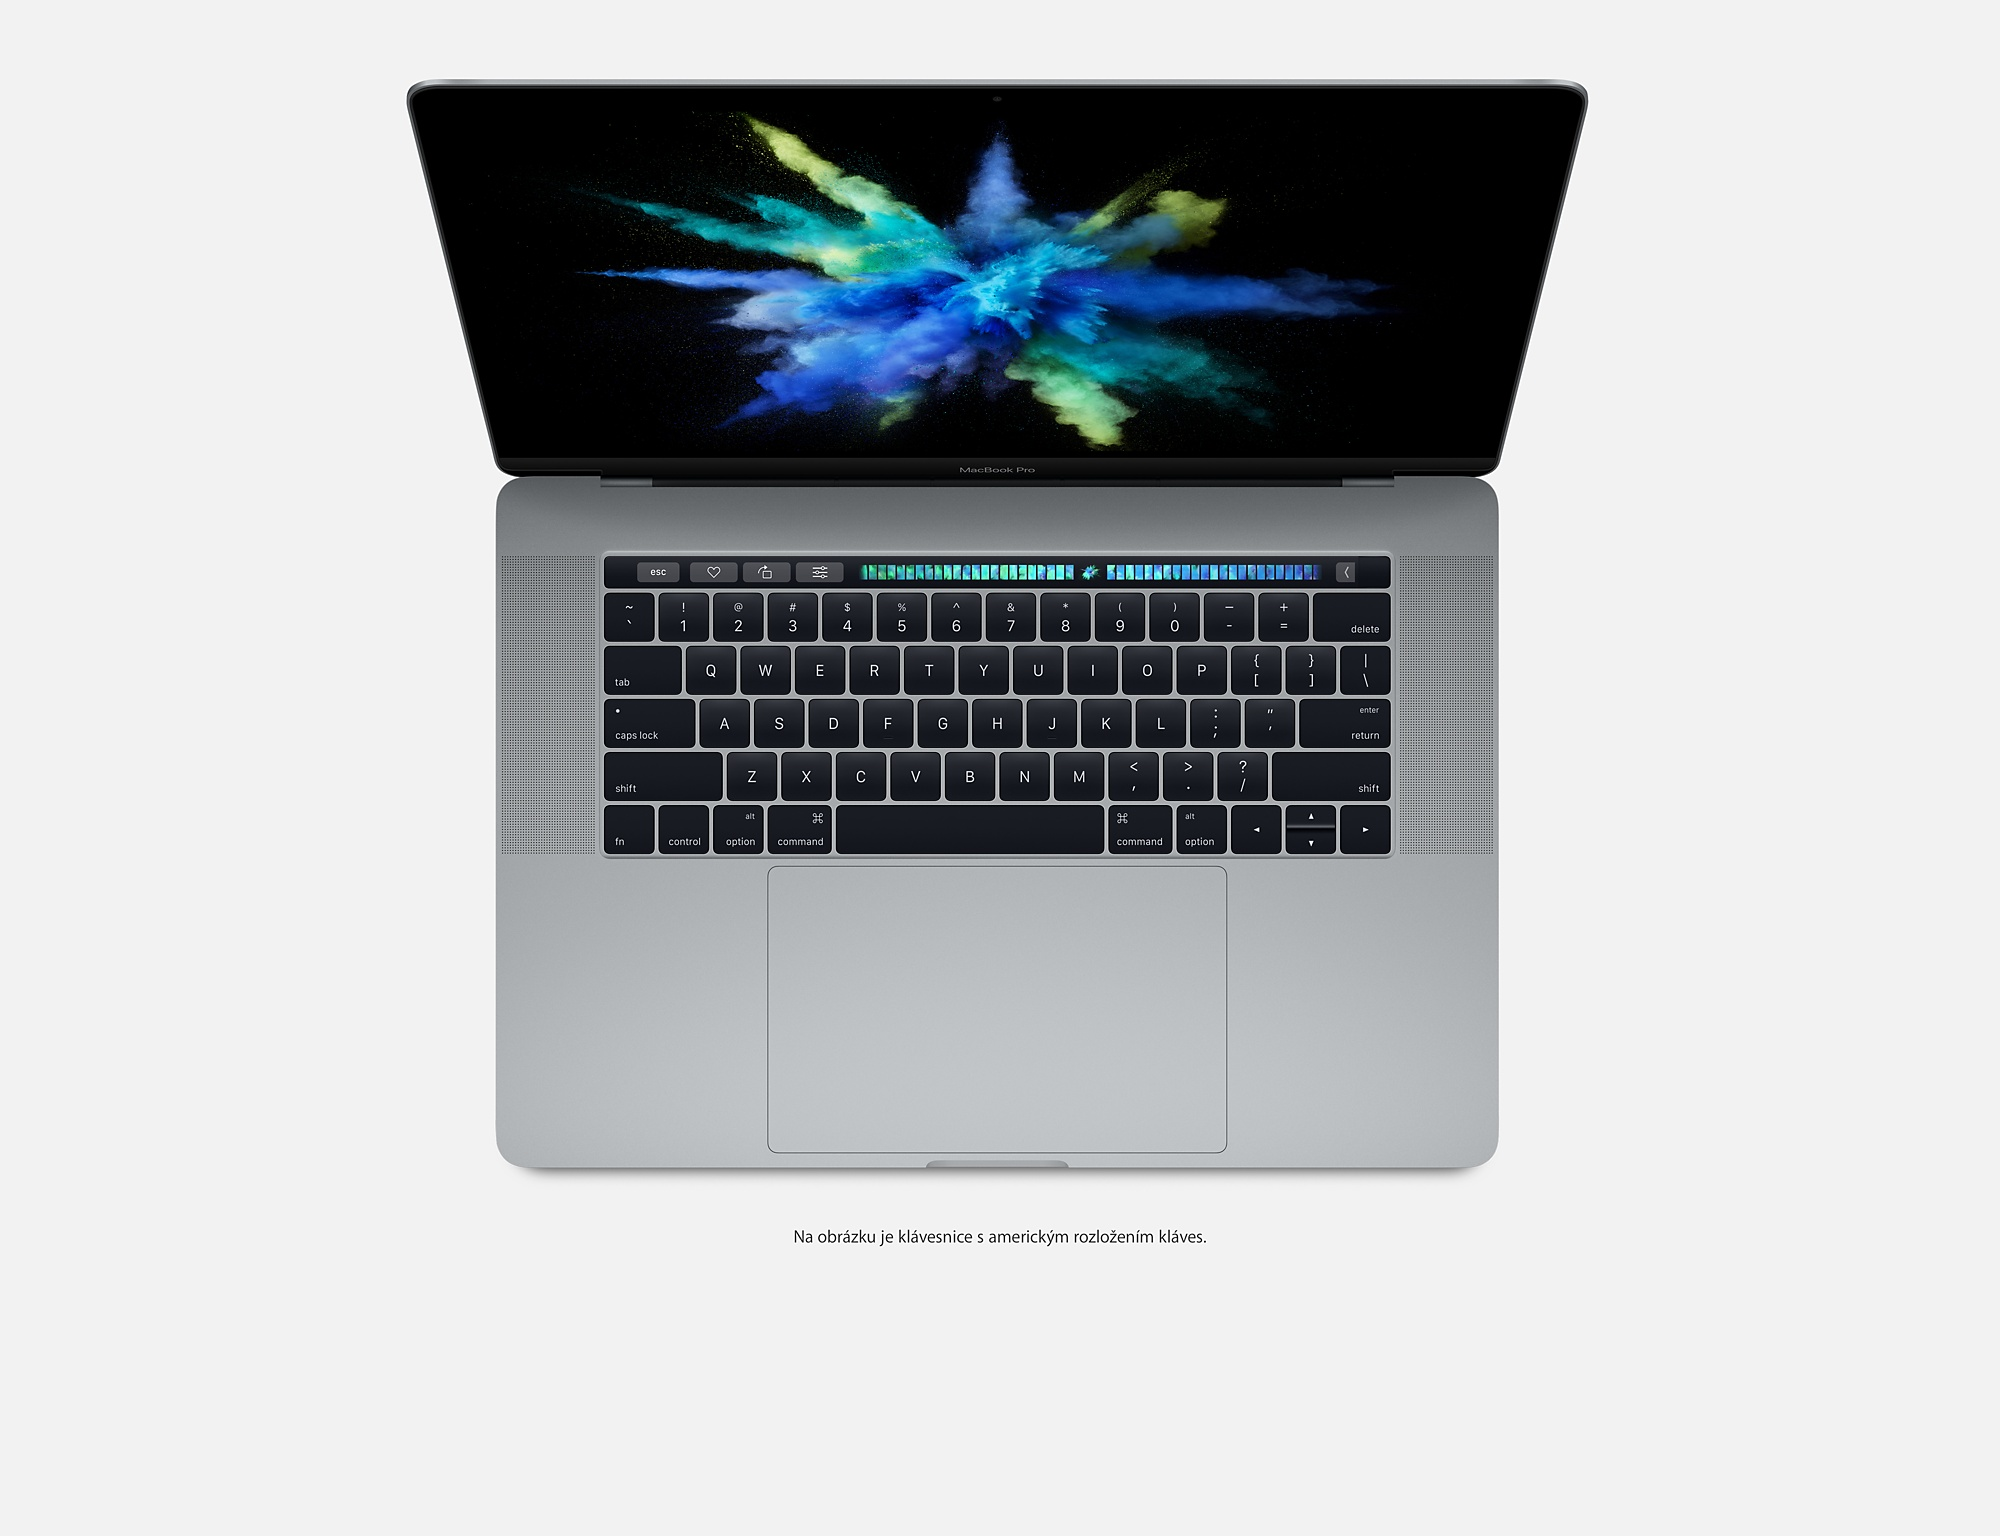 MacBook Pro 15'' i7 2.7GHz/16G/512/TB/SK/Sp Gray